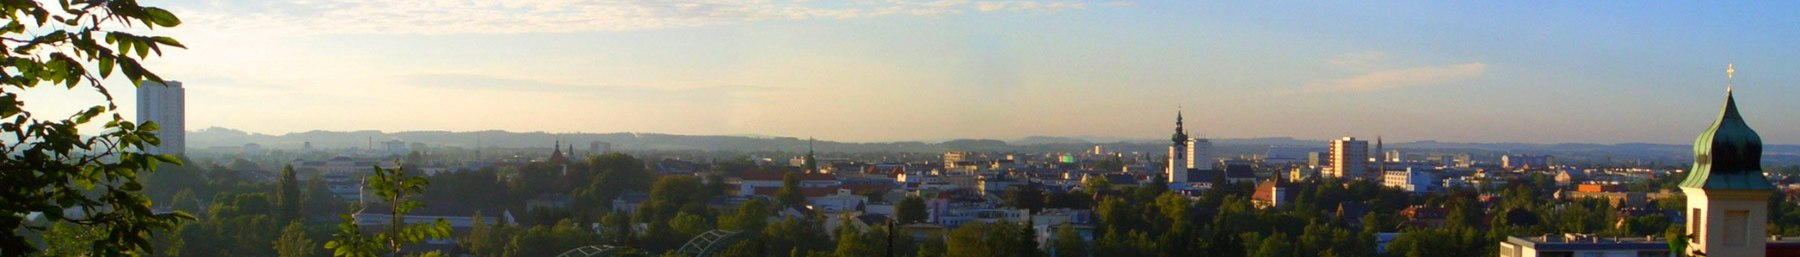 An overview of Wels at dawn.